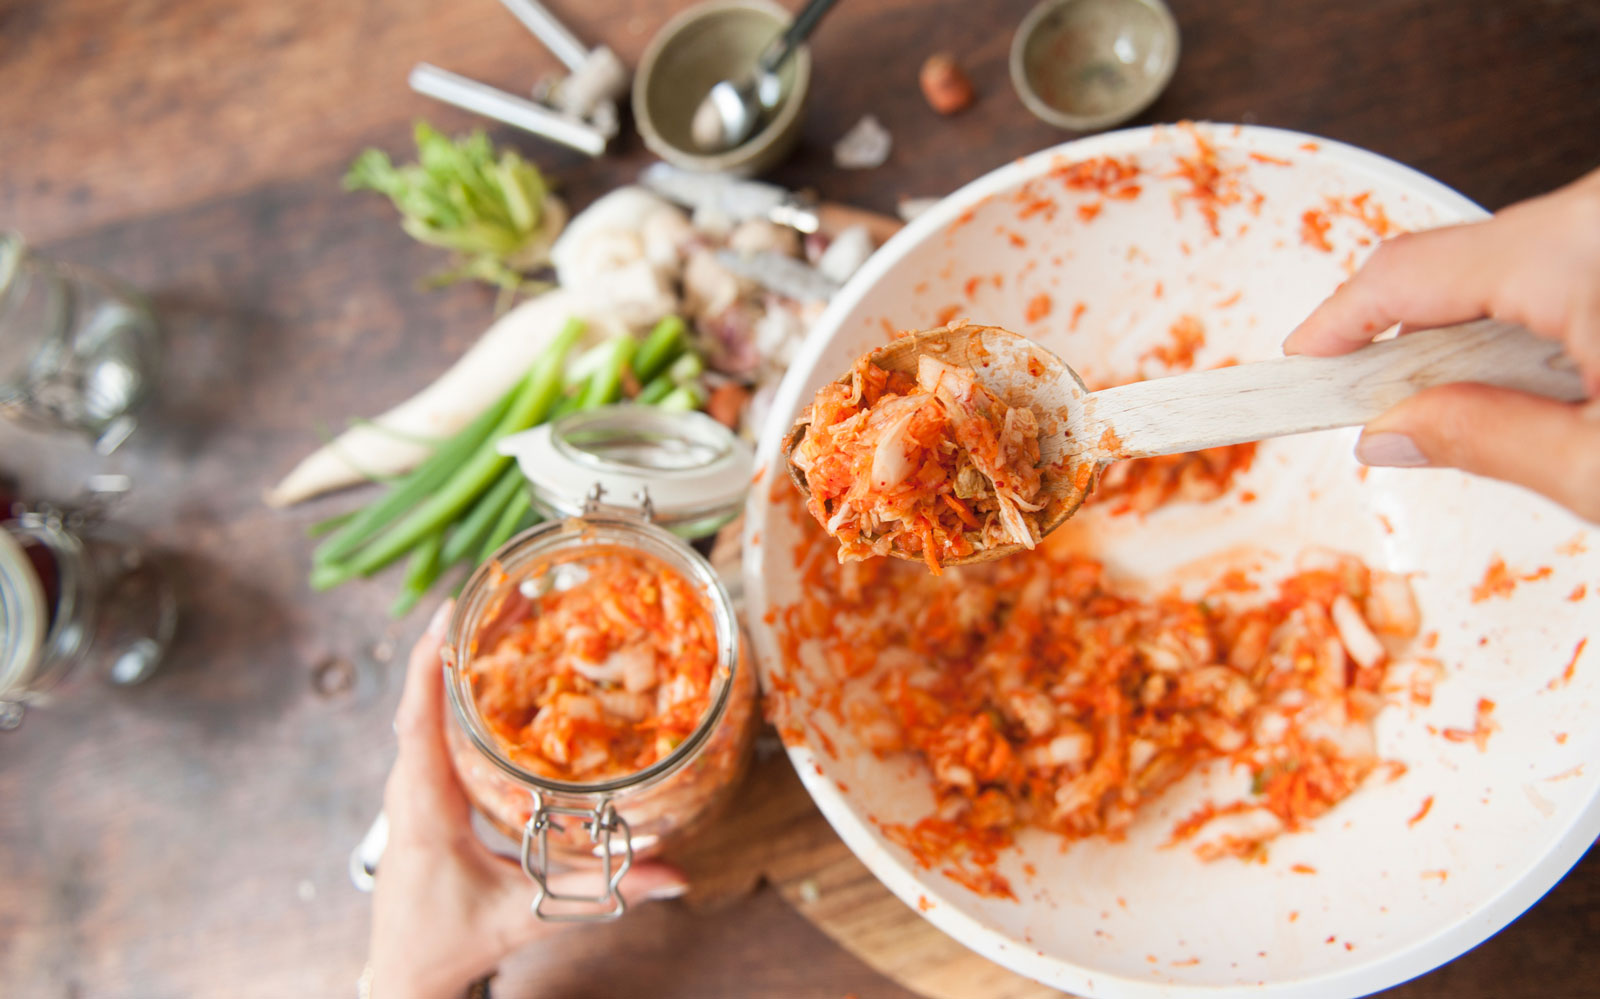 Why South Korea Spent $77 Million to Get You to Eat Kimchi